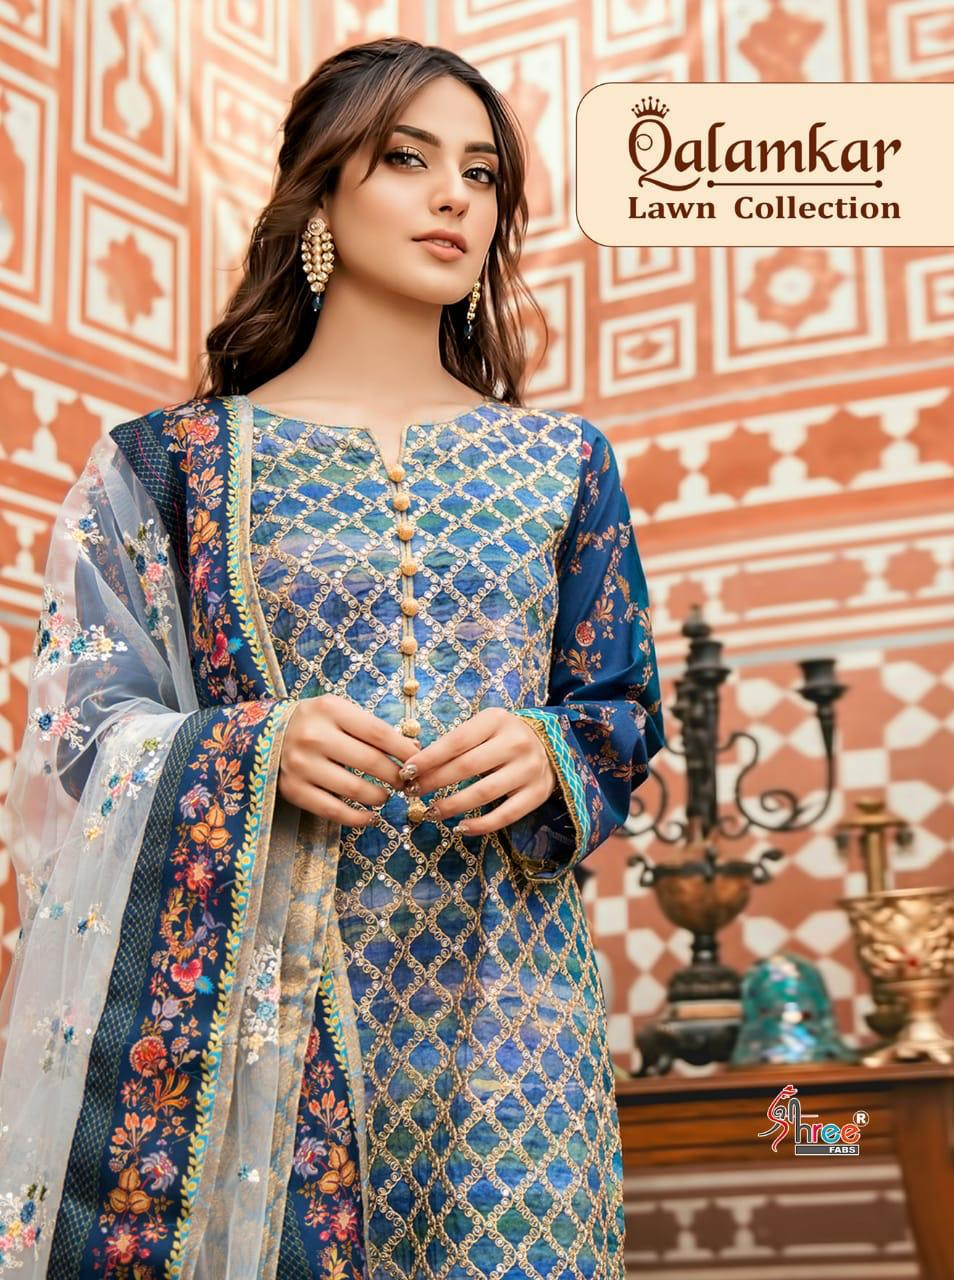 Shree Fabs Qalamkar Lawn Collection Designer Cambric Cotton Suits In Best Wholesale Rate